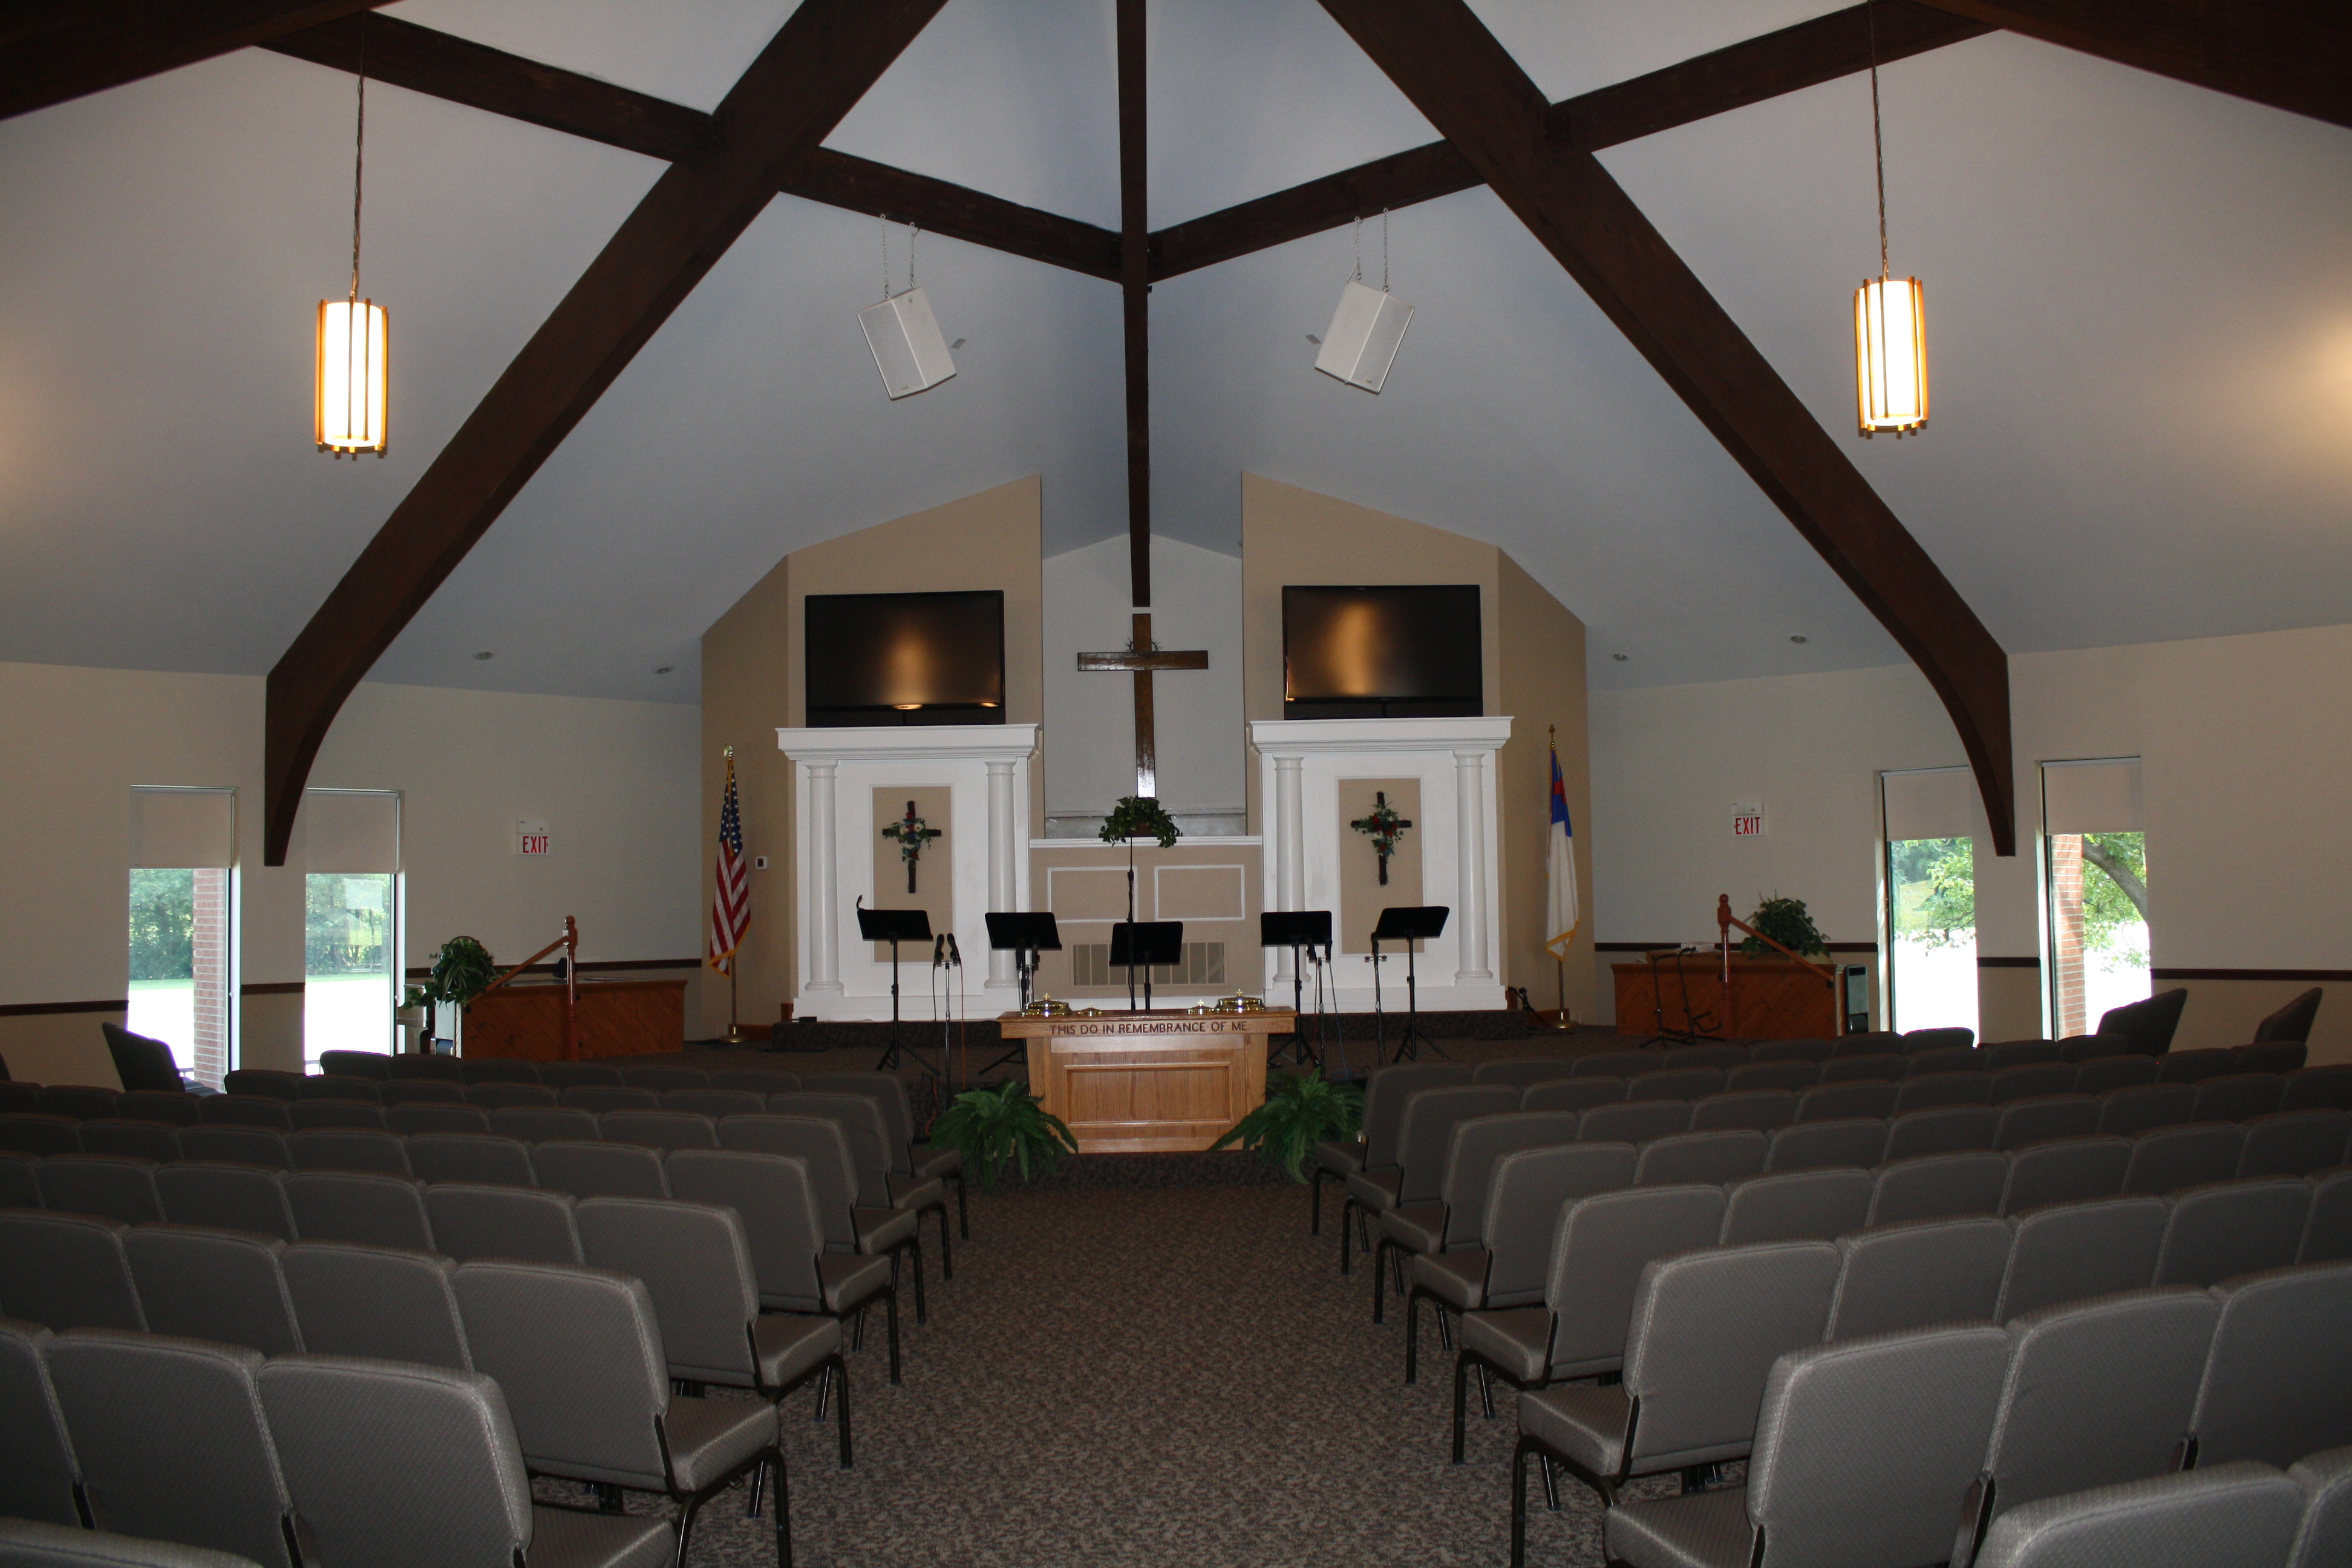 church interior after mold removal